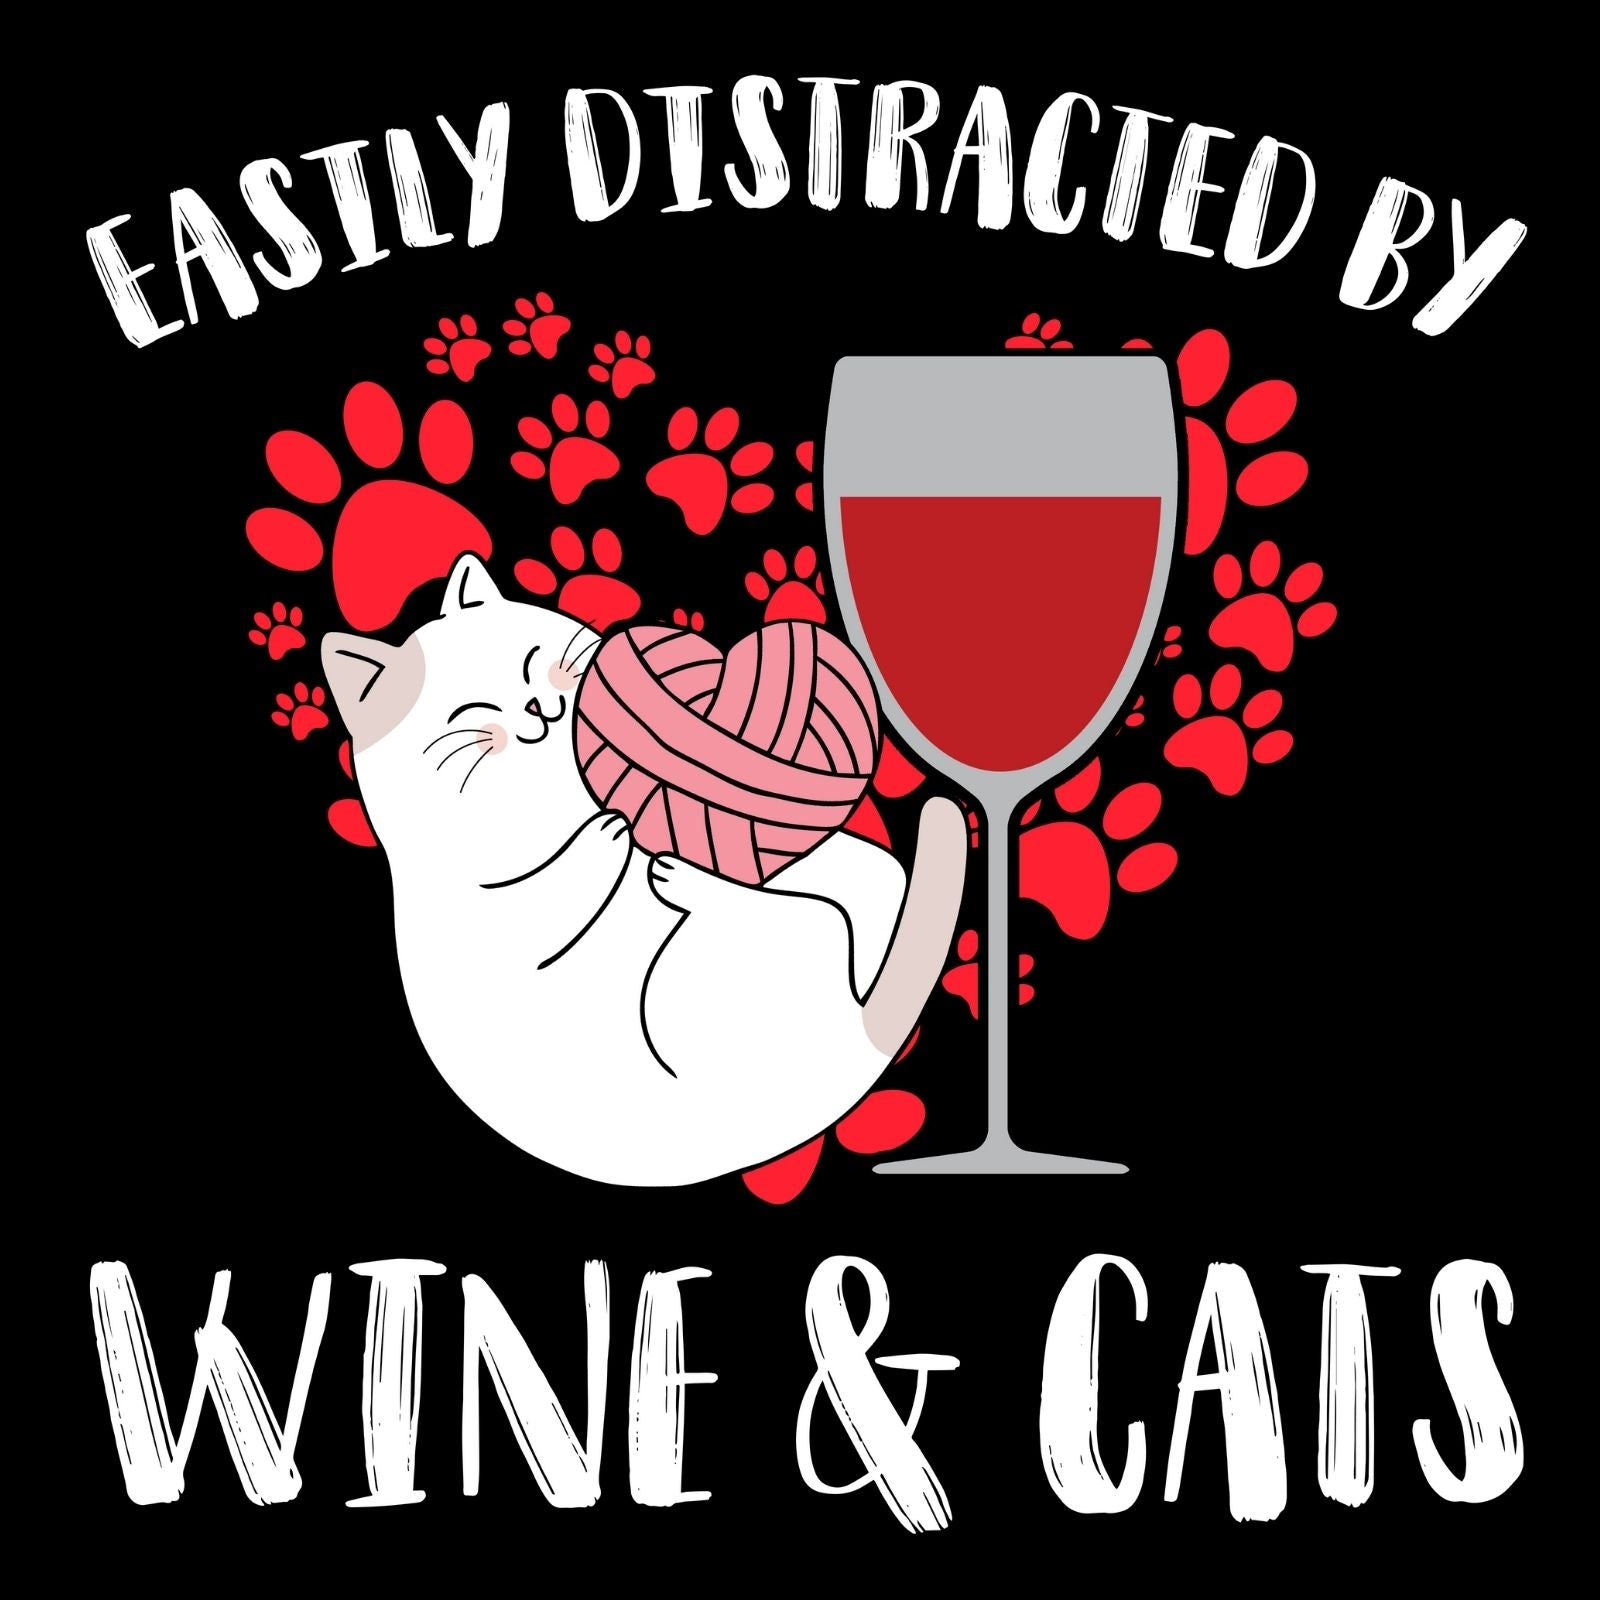 Easily Distracted By Wine & Cats - Bastard Graphics